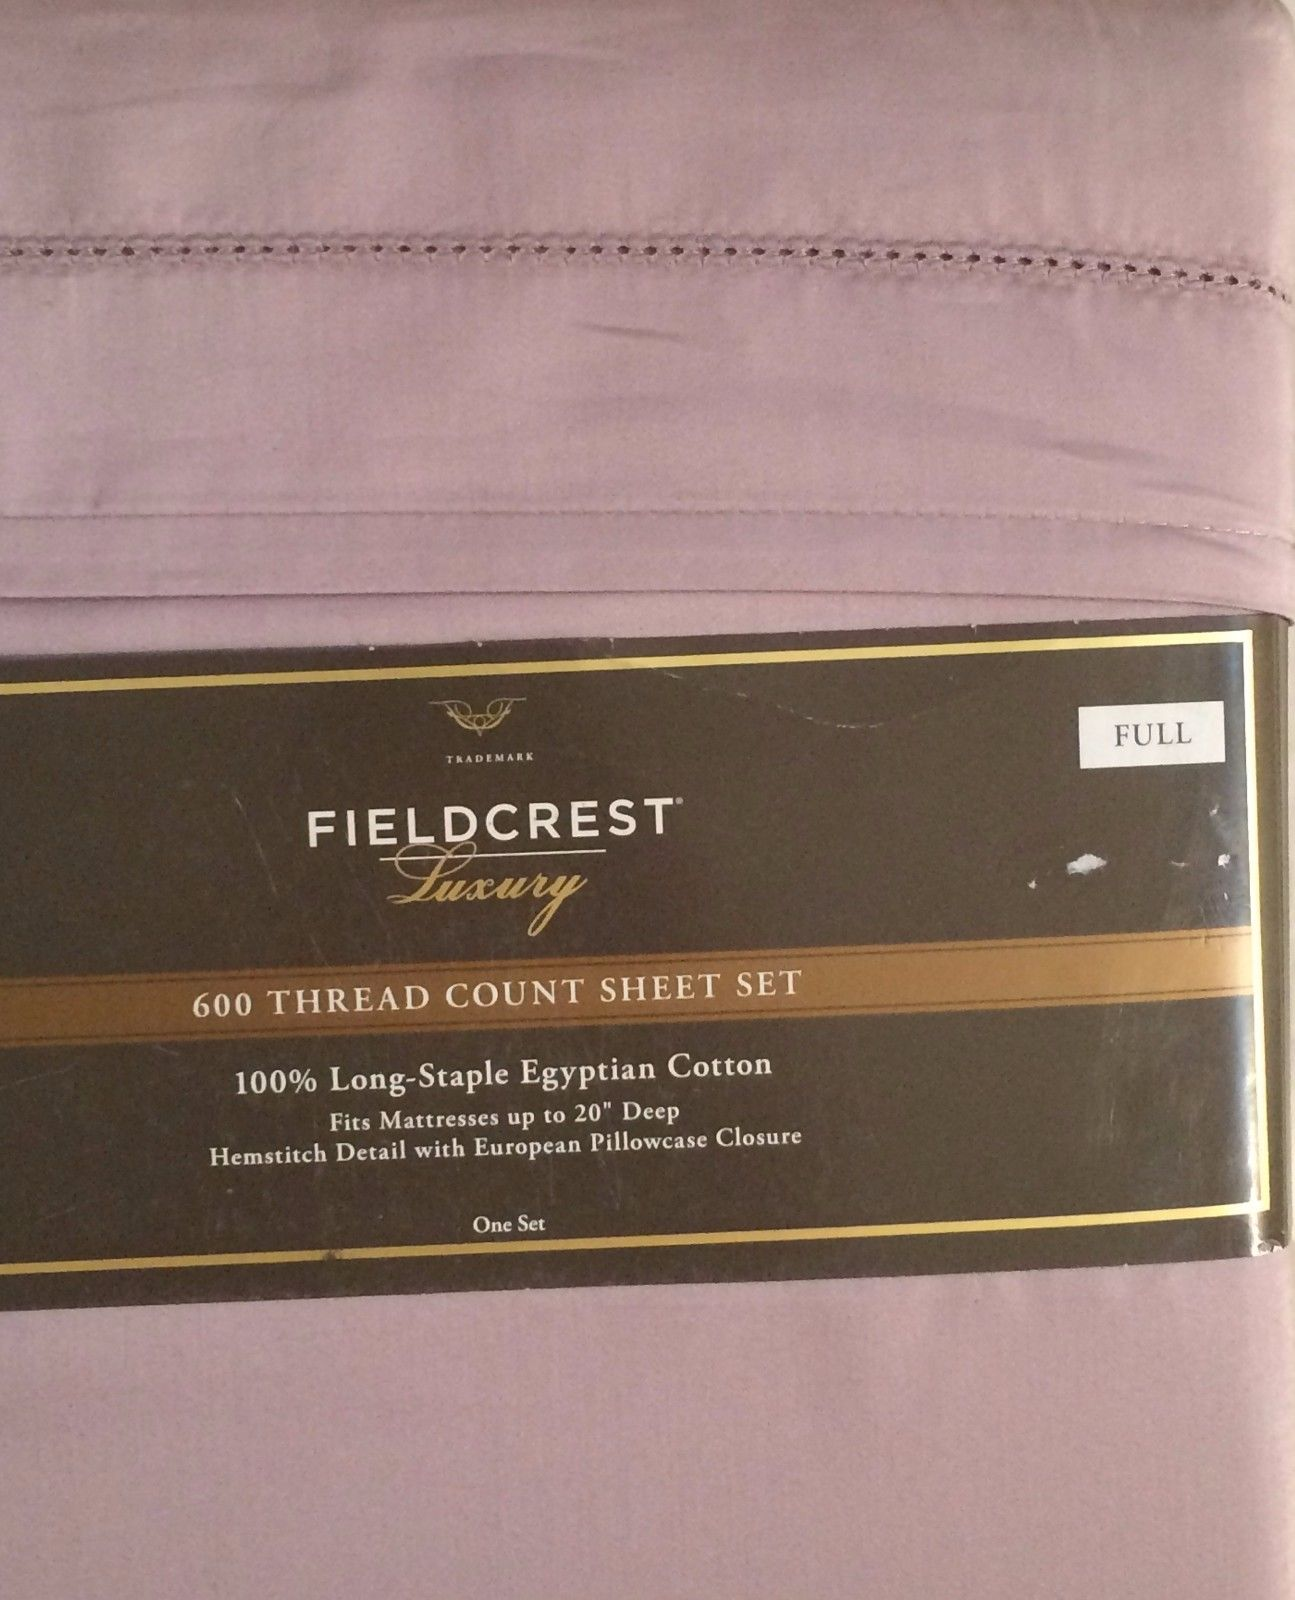 Fieldcrest Matelasse | Fieldcrest Luxury Sheets | Fieldcrest Luxury Bath  Towels